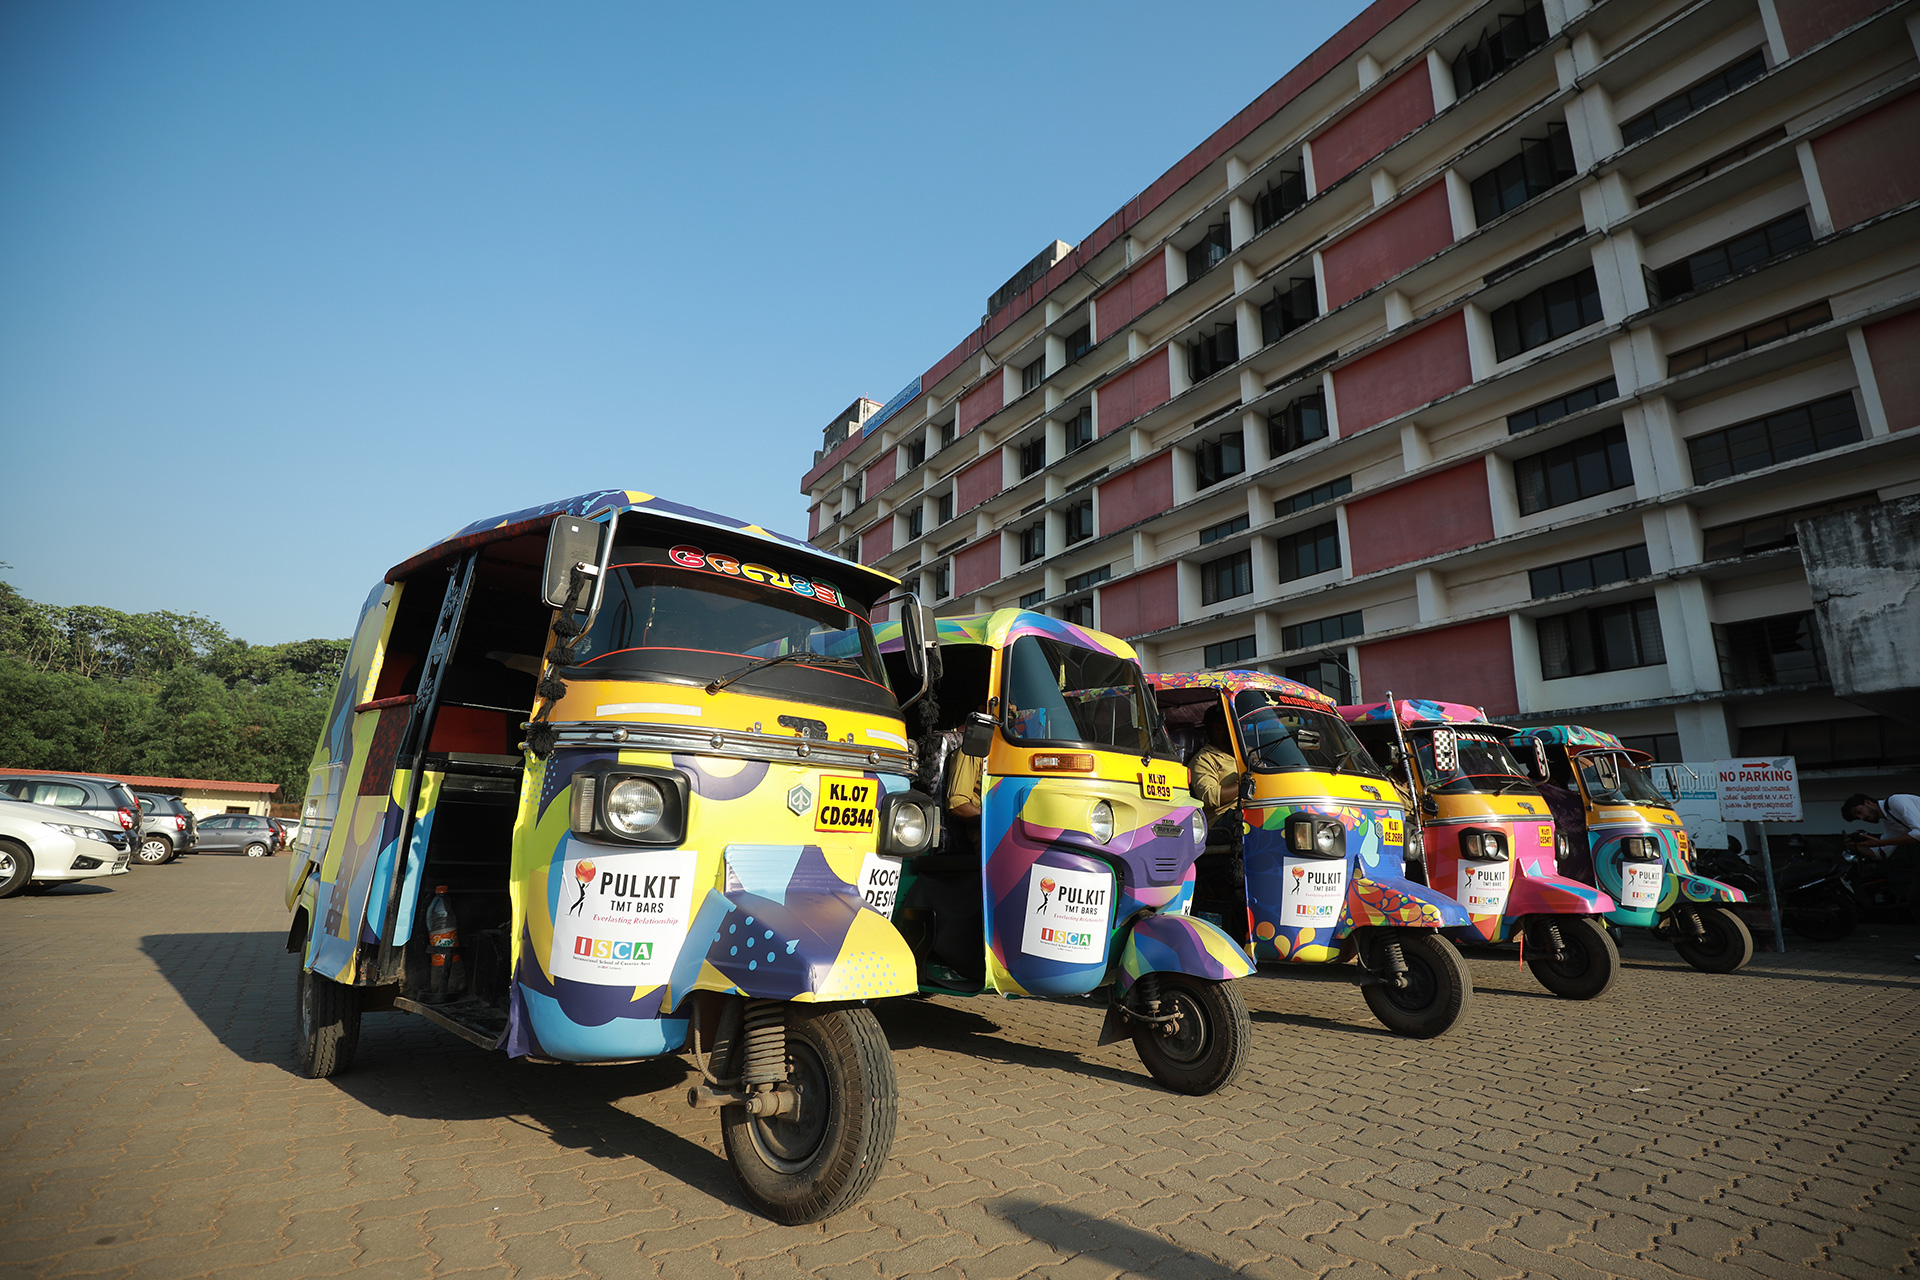 Auto-rickshaws painted in unconventional colour patterns for the Kochi Design Week | Kochi Design Week | STIRworld